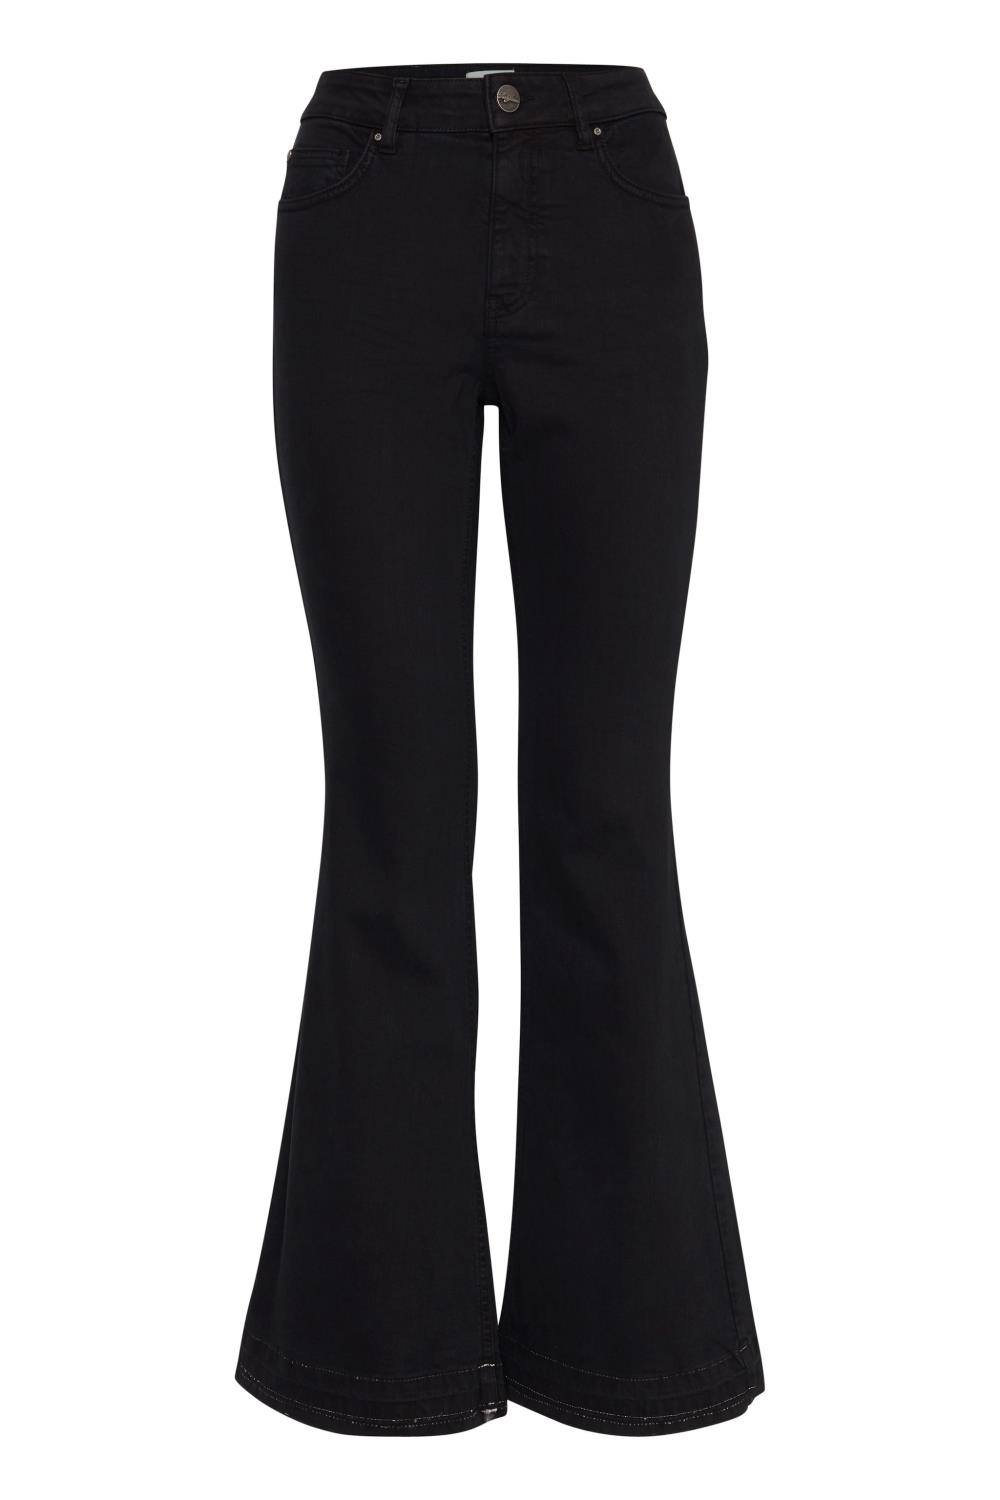 Pulz PxEmma highwaist jeans, flared leg, black beauty